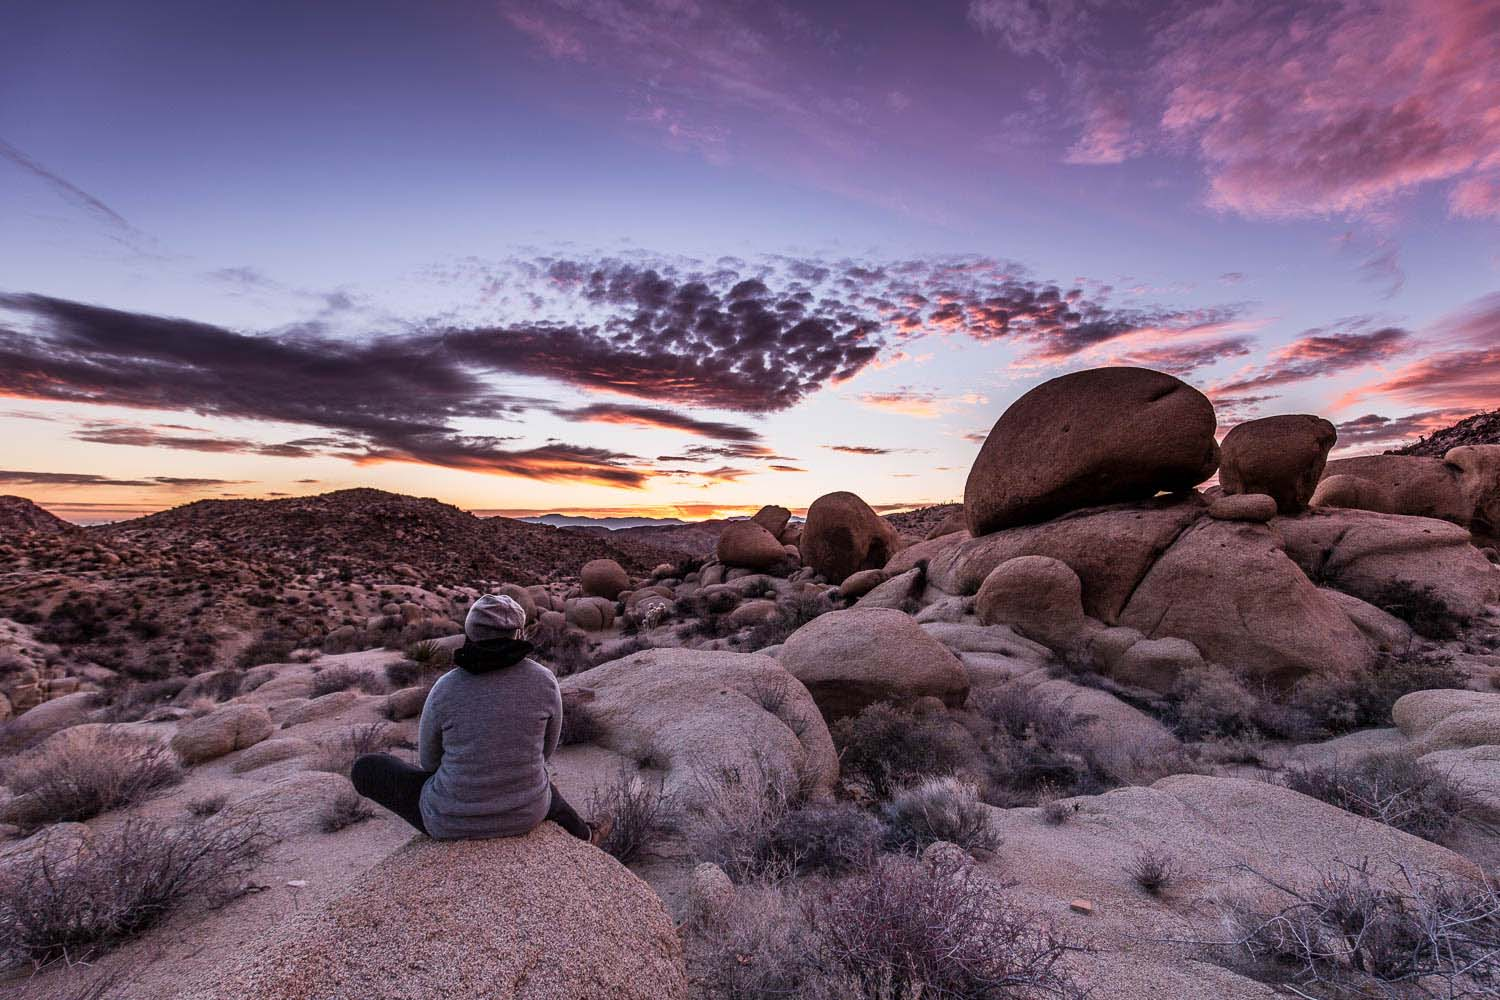 sunset-joshua-tree-national park